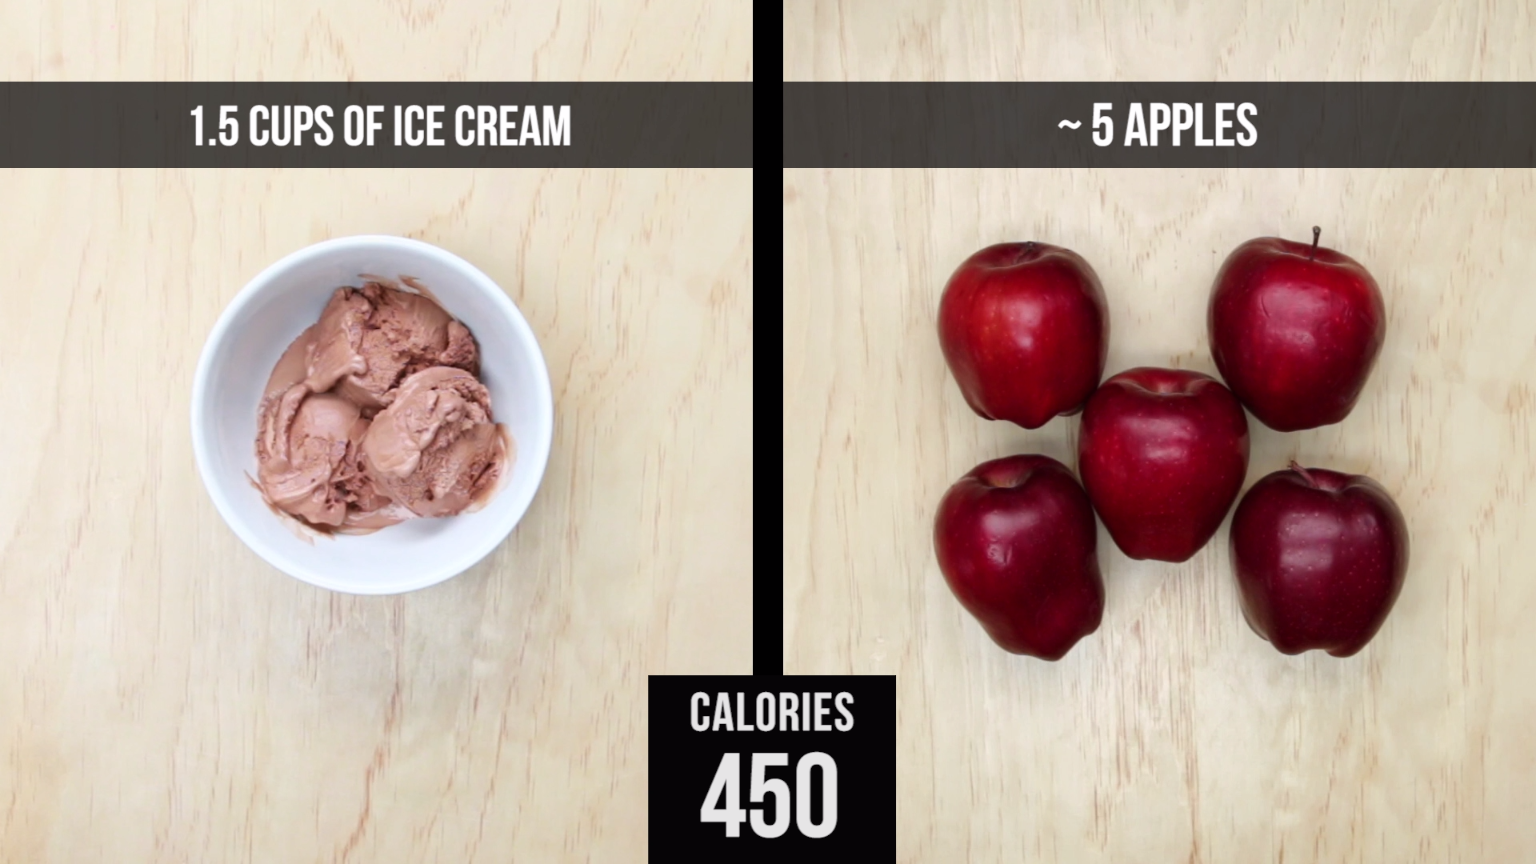 Calories In Junk Food Vs Healthy Food